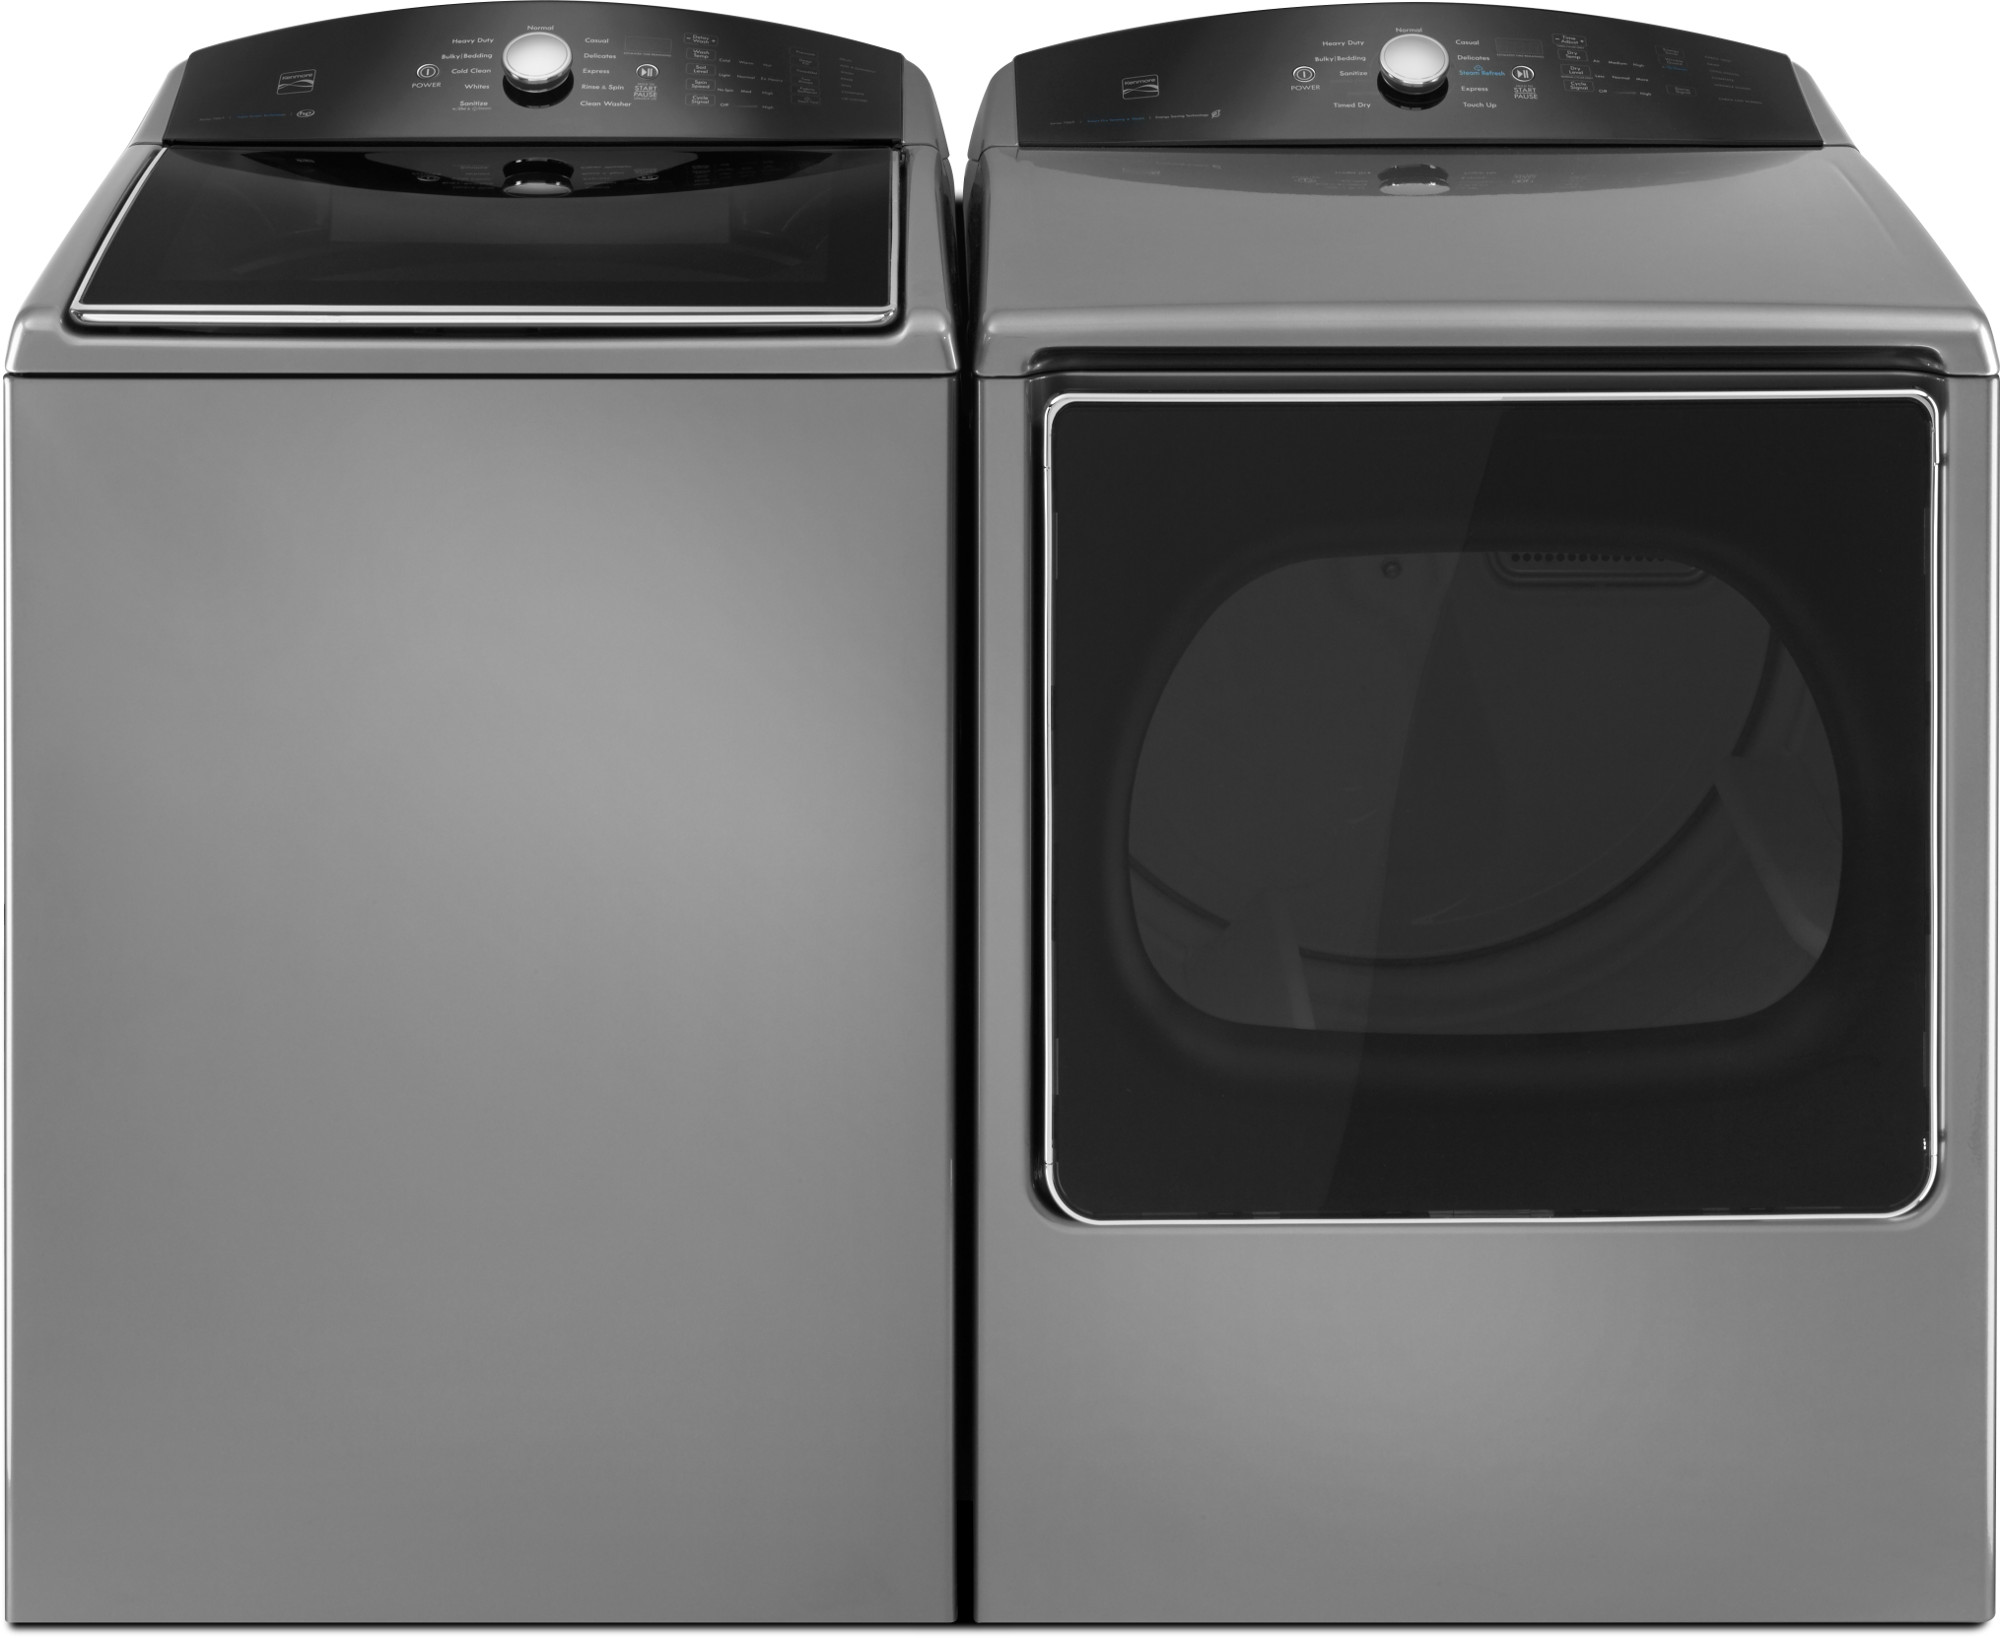 Kenmore 29133 5.3 cu. ft. Top-Load Washer w/ Exclusive Triple Action Impeller - Metallic